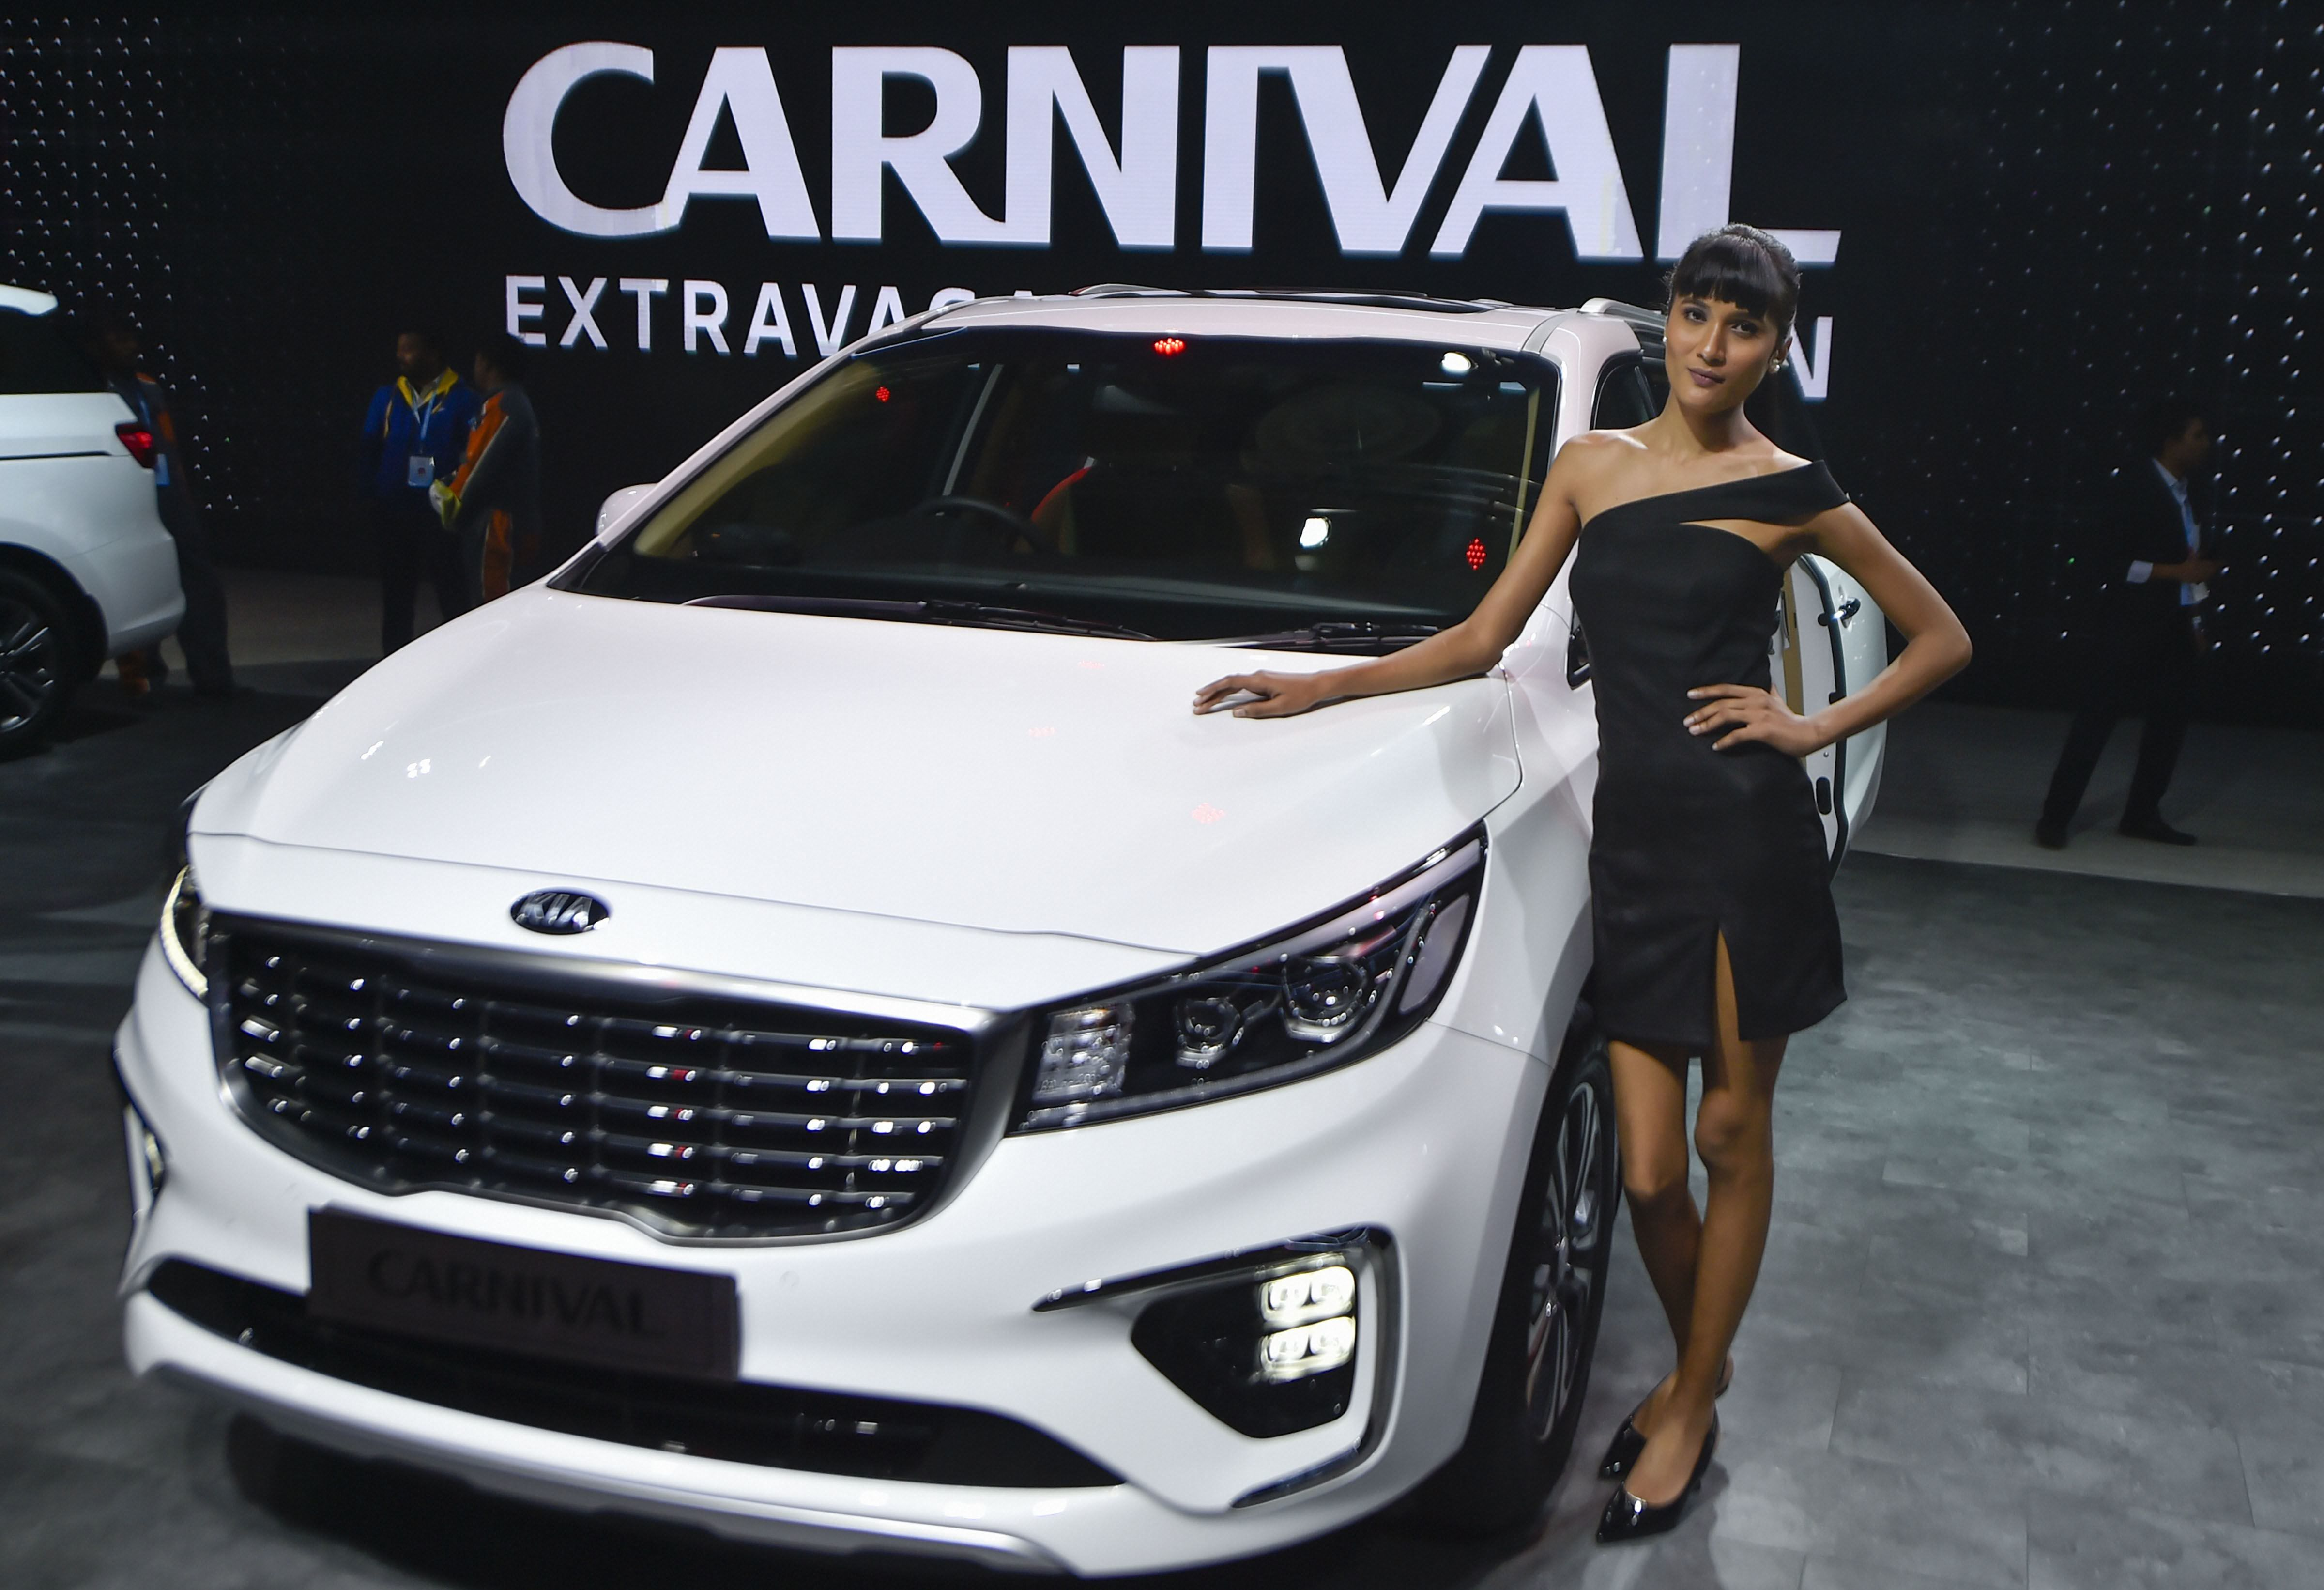 On the outside, Carnival has projector headlights and DRLs, Kia's signature Tiger-nose front grille and a tall profile. (PTI)